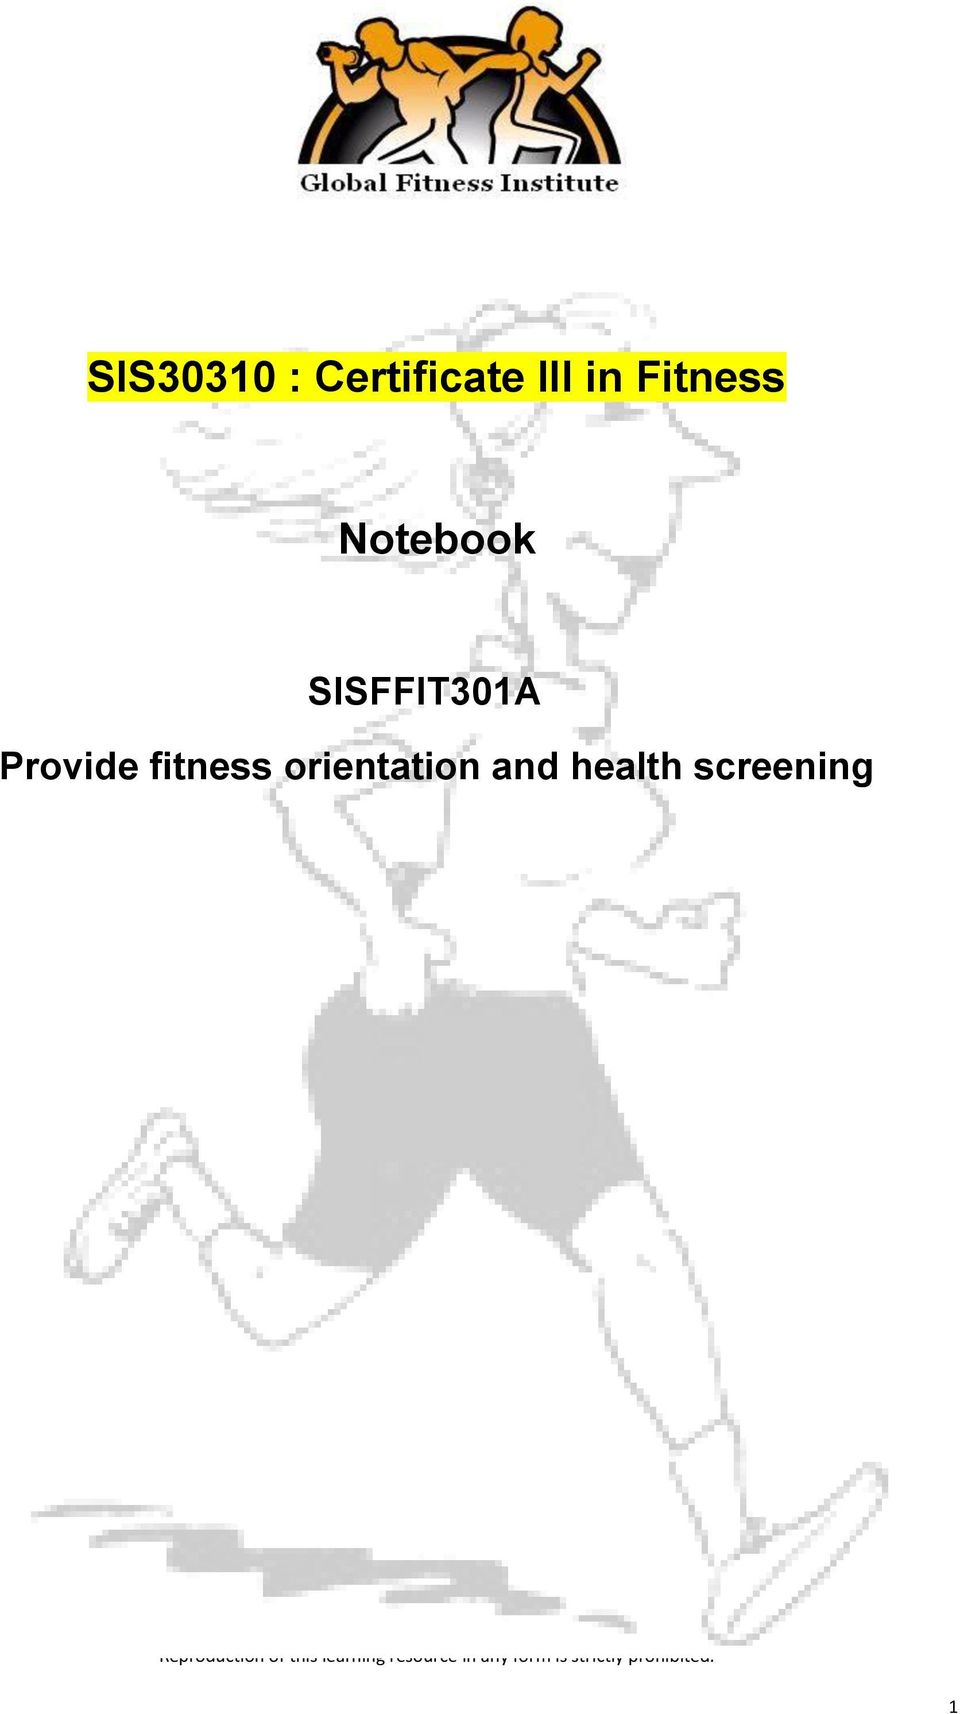 SISFFIT301A Provide fitness